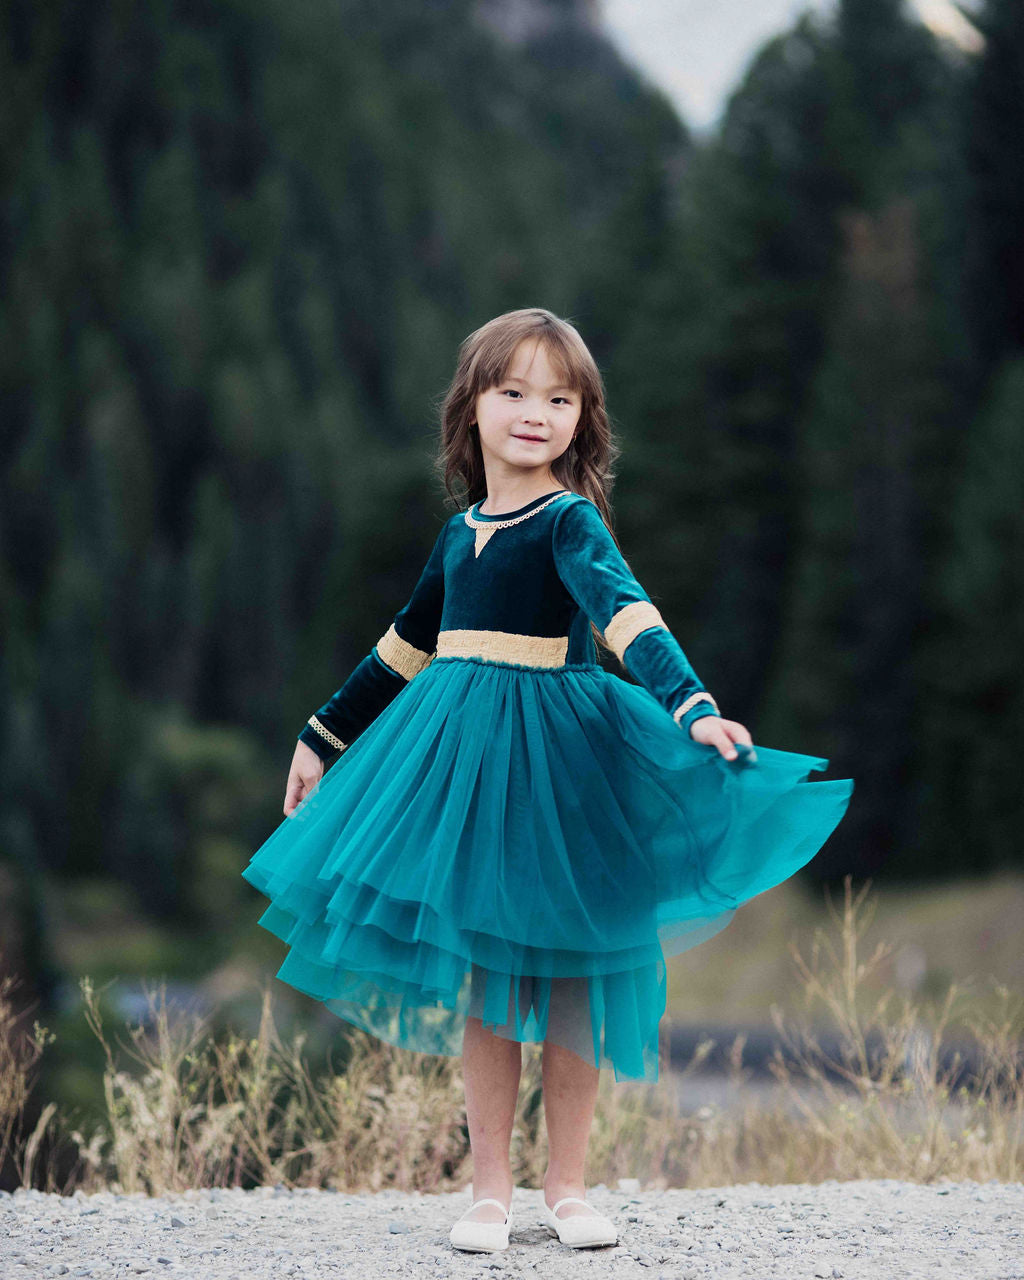 The Scottish Princess Dress - Preorder